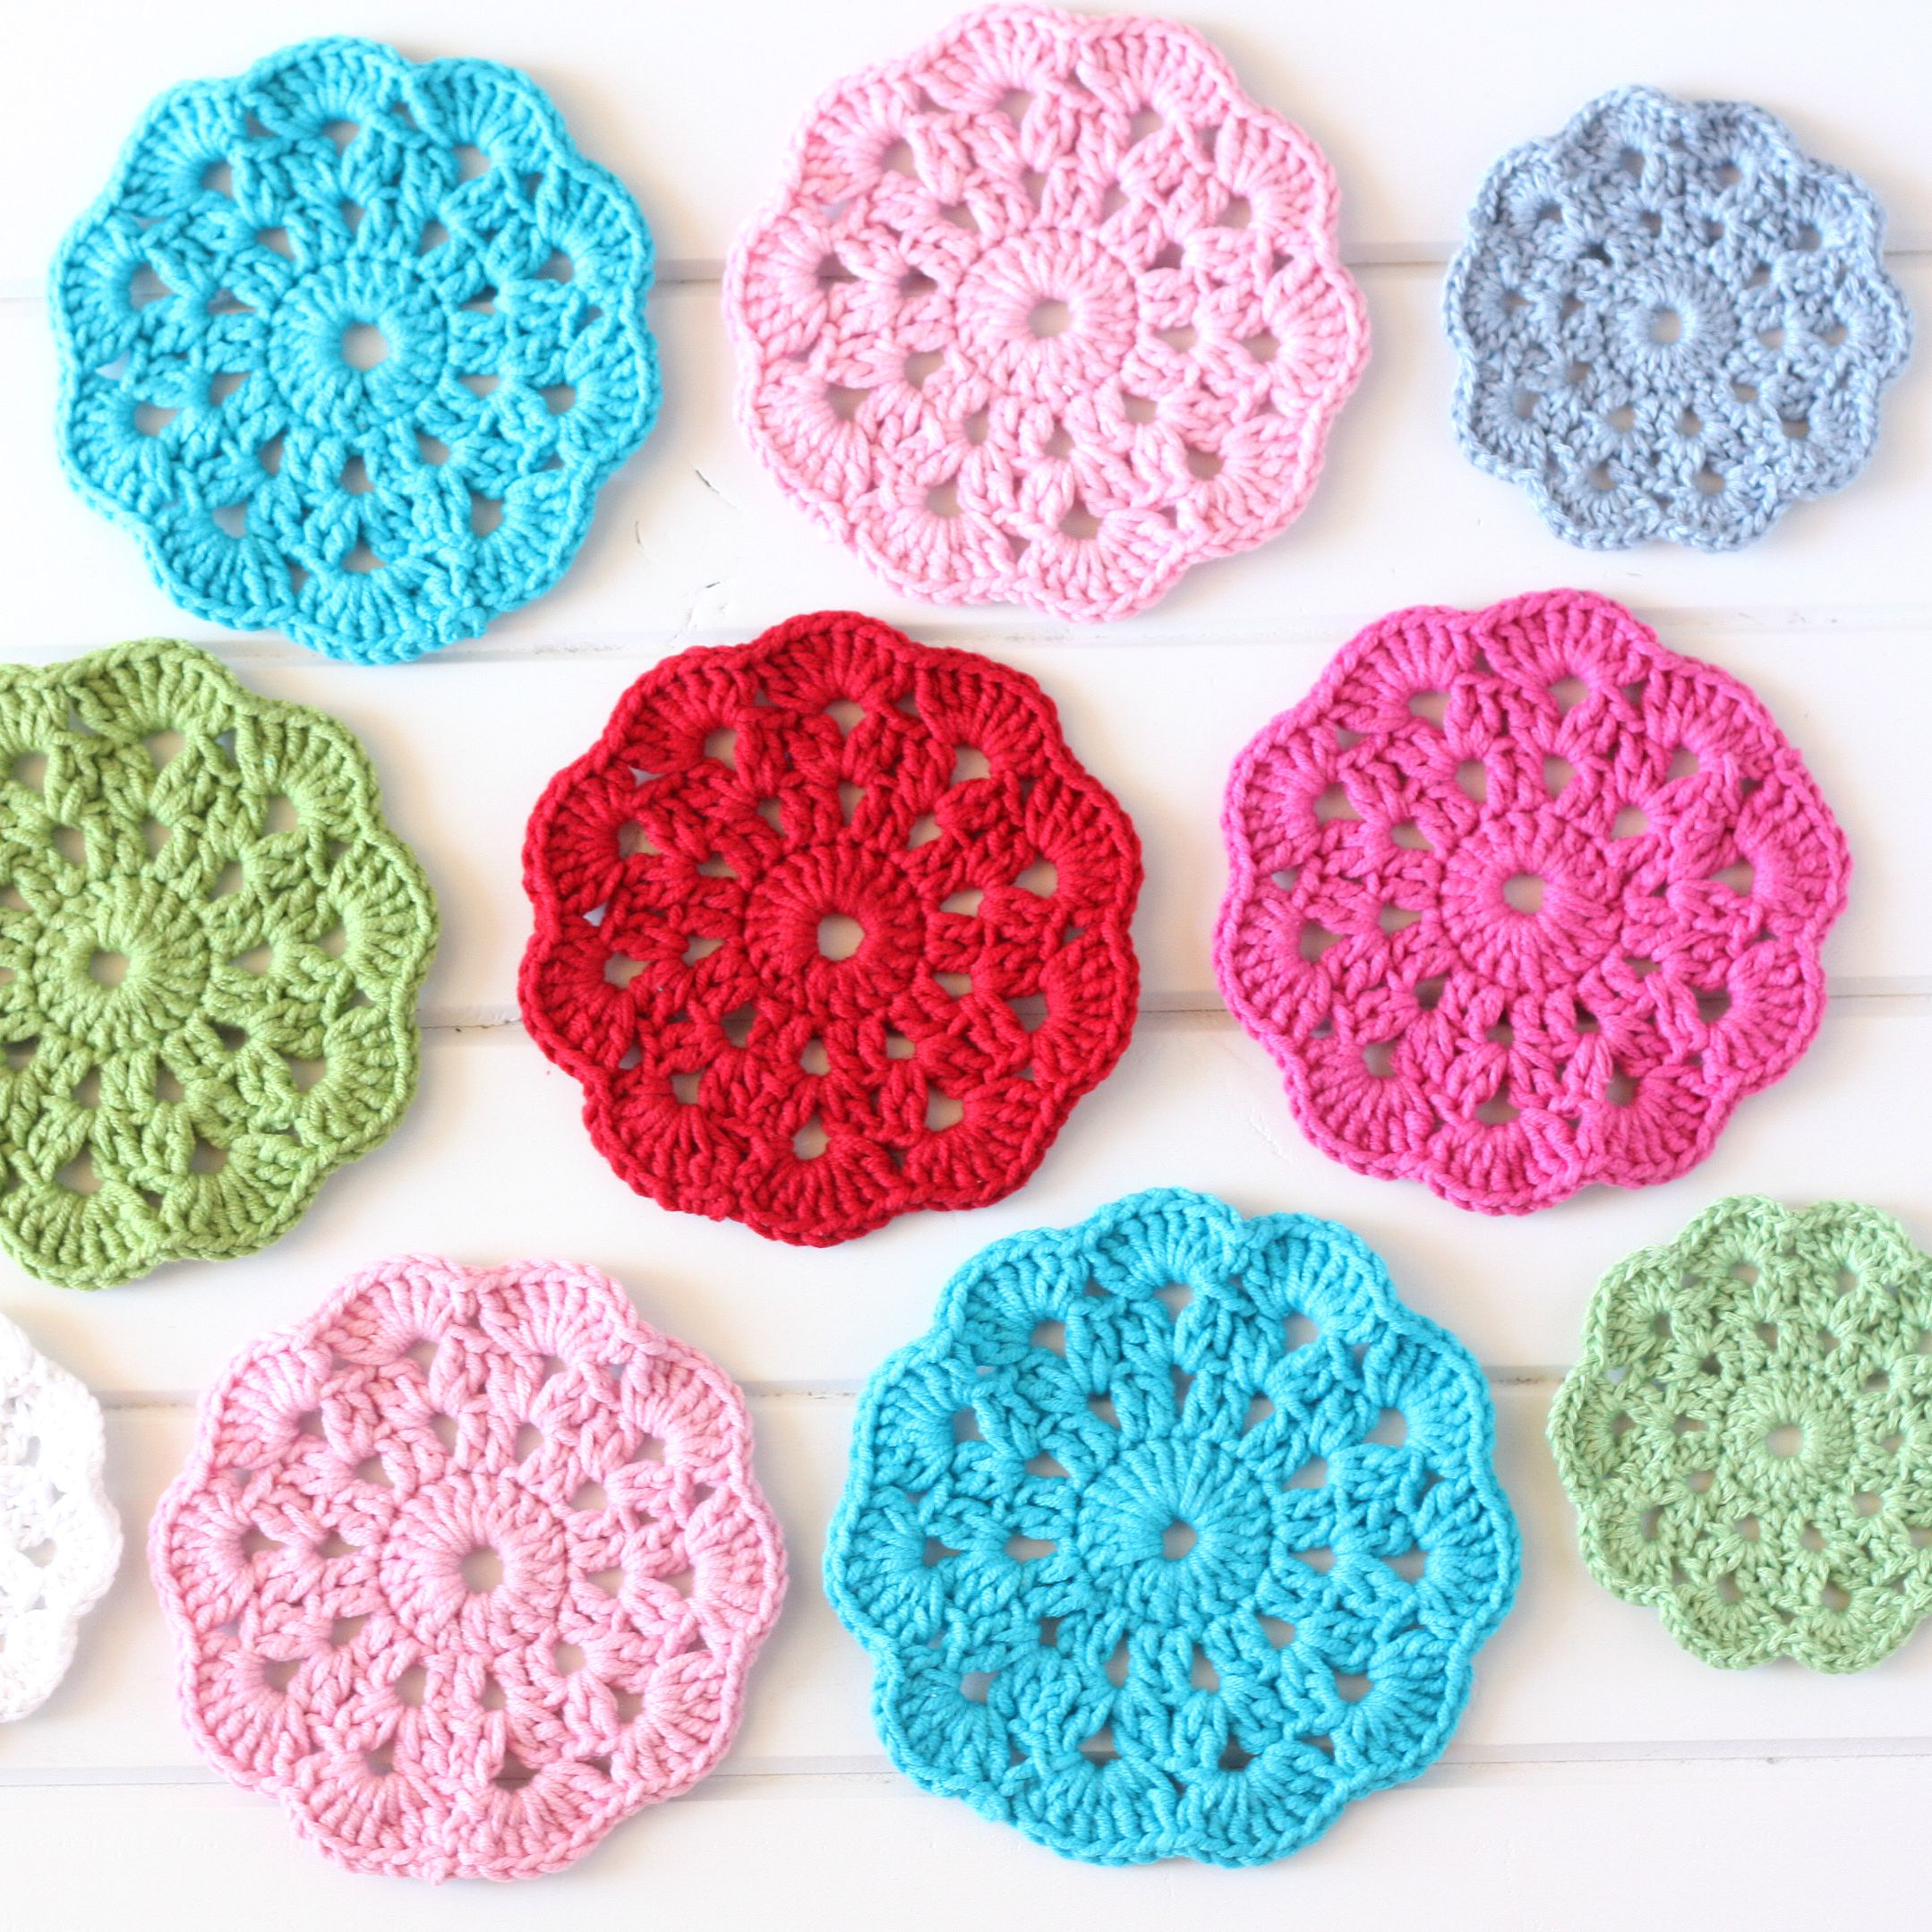 Crocheting Coasters : Crochet coasters by A Spoonful of Sugar